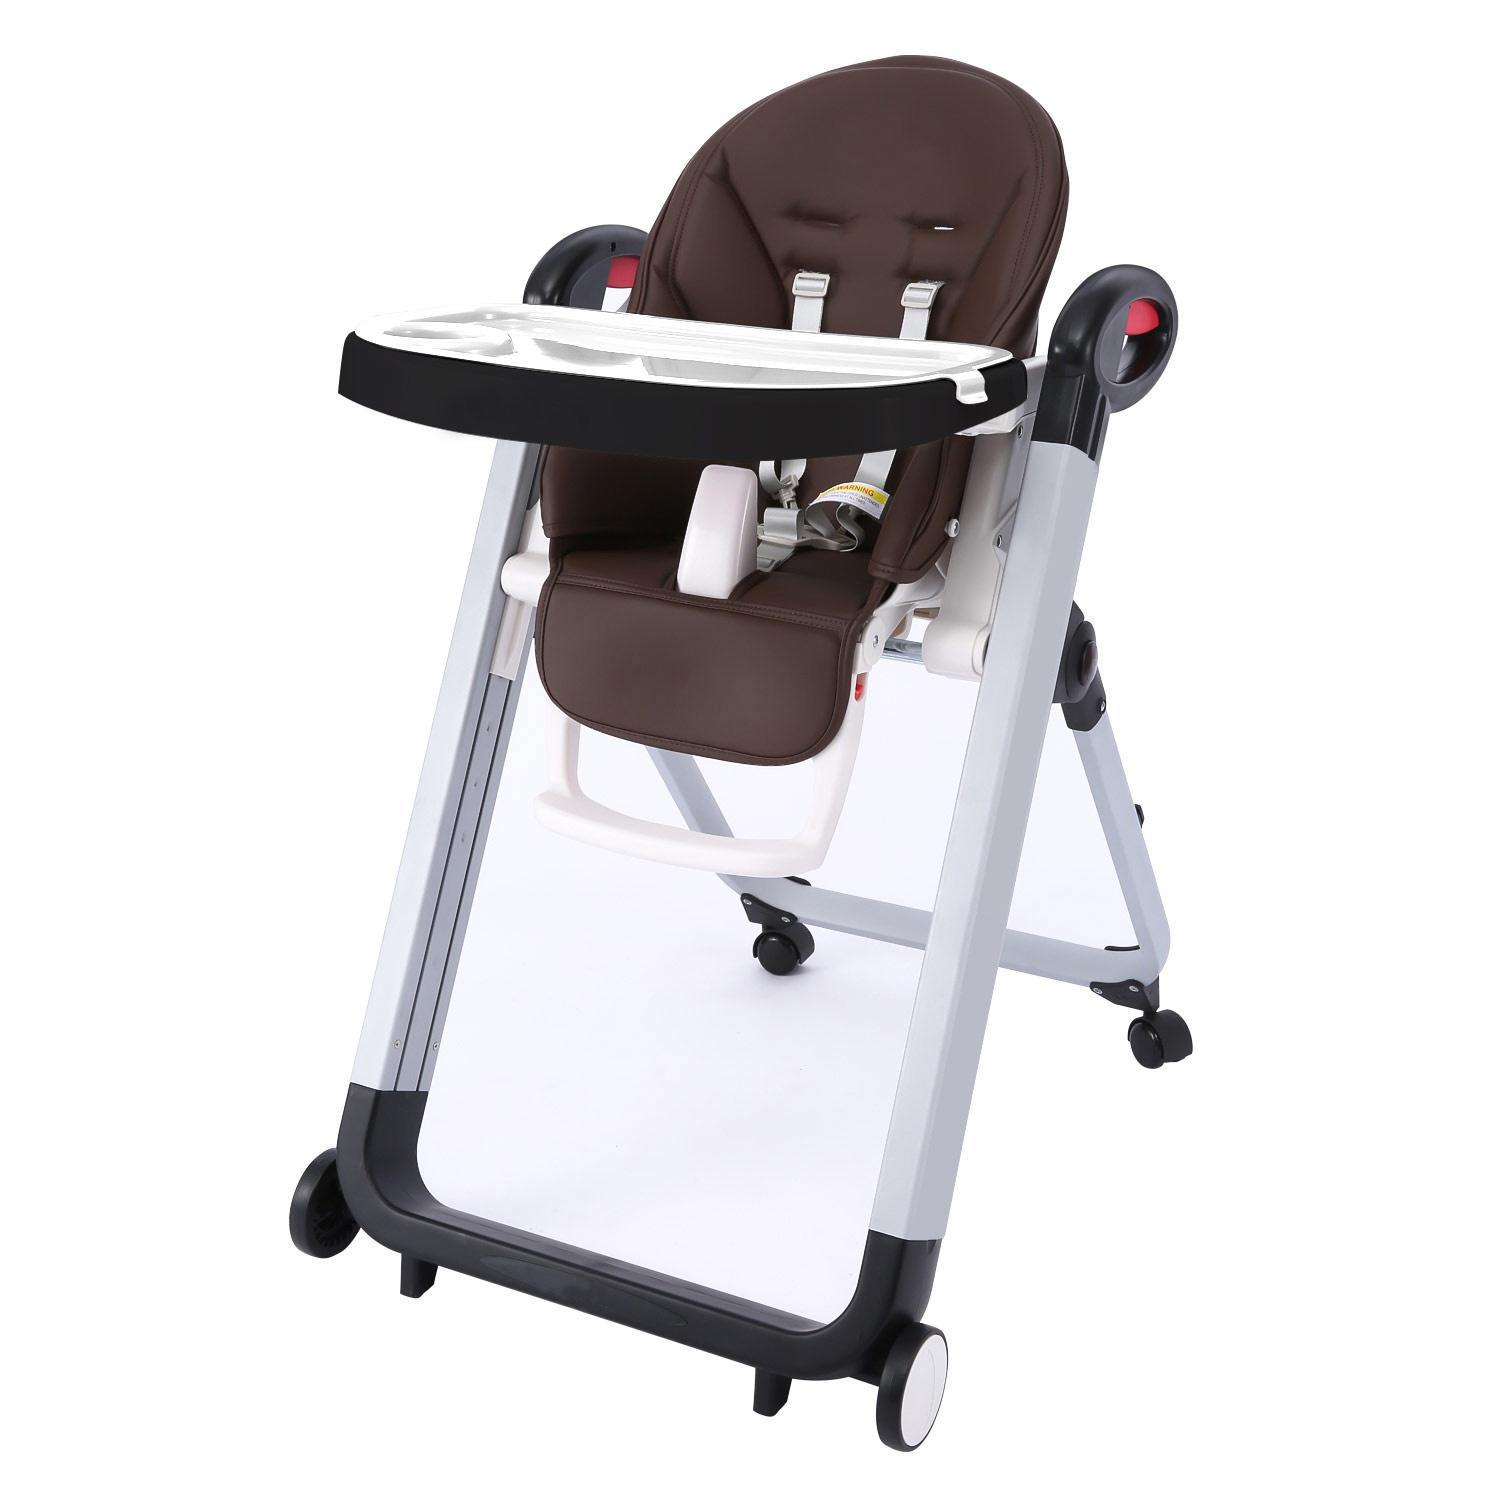 Dailydeal Multi-functional Baby High Feeding Chair.Full Recline Siesta Highchair, Portable Telescopic Child Dining Table Chair Supporting 45lbs DADEA